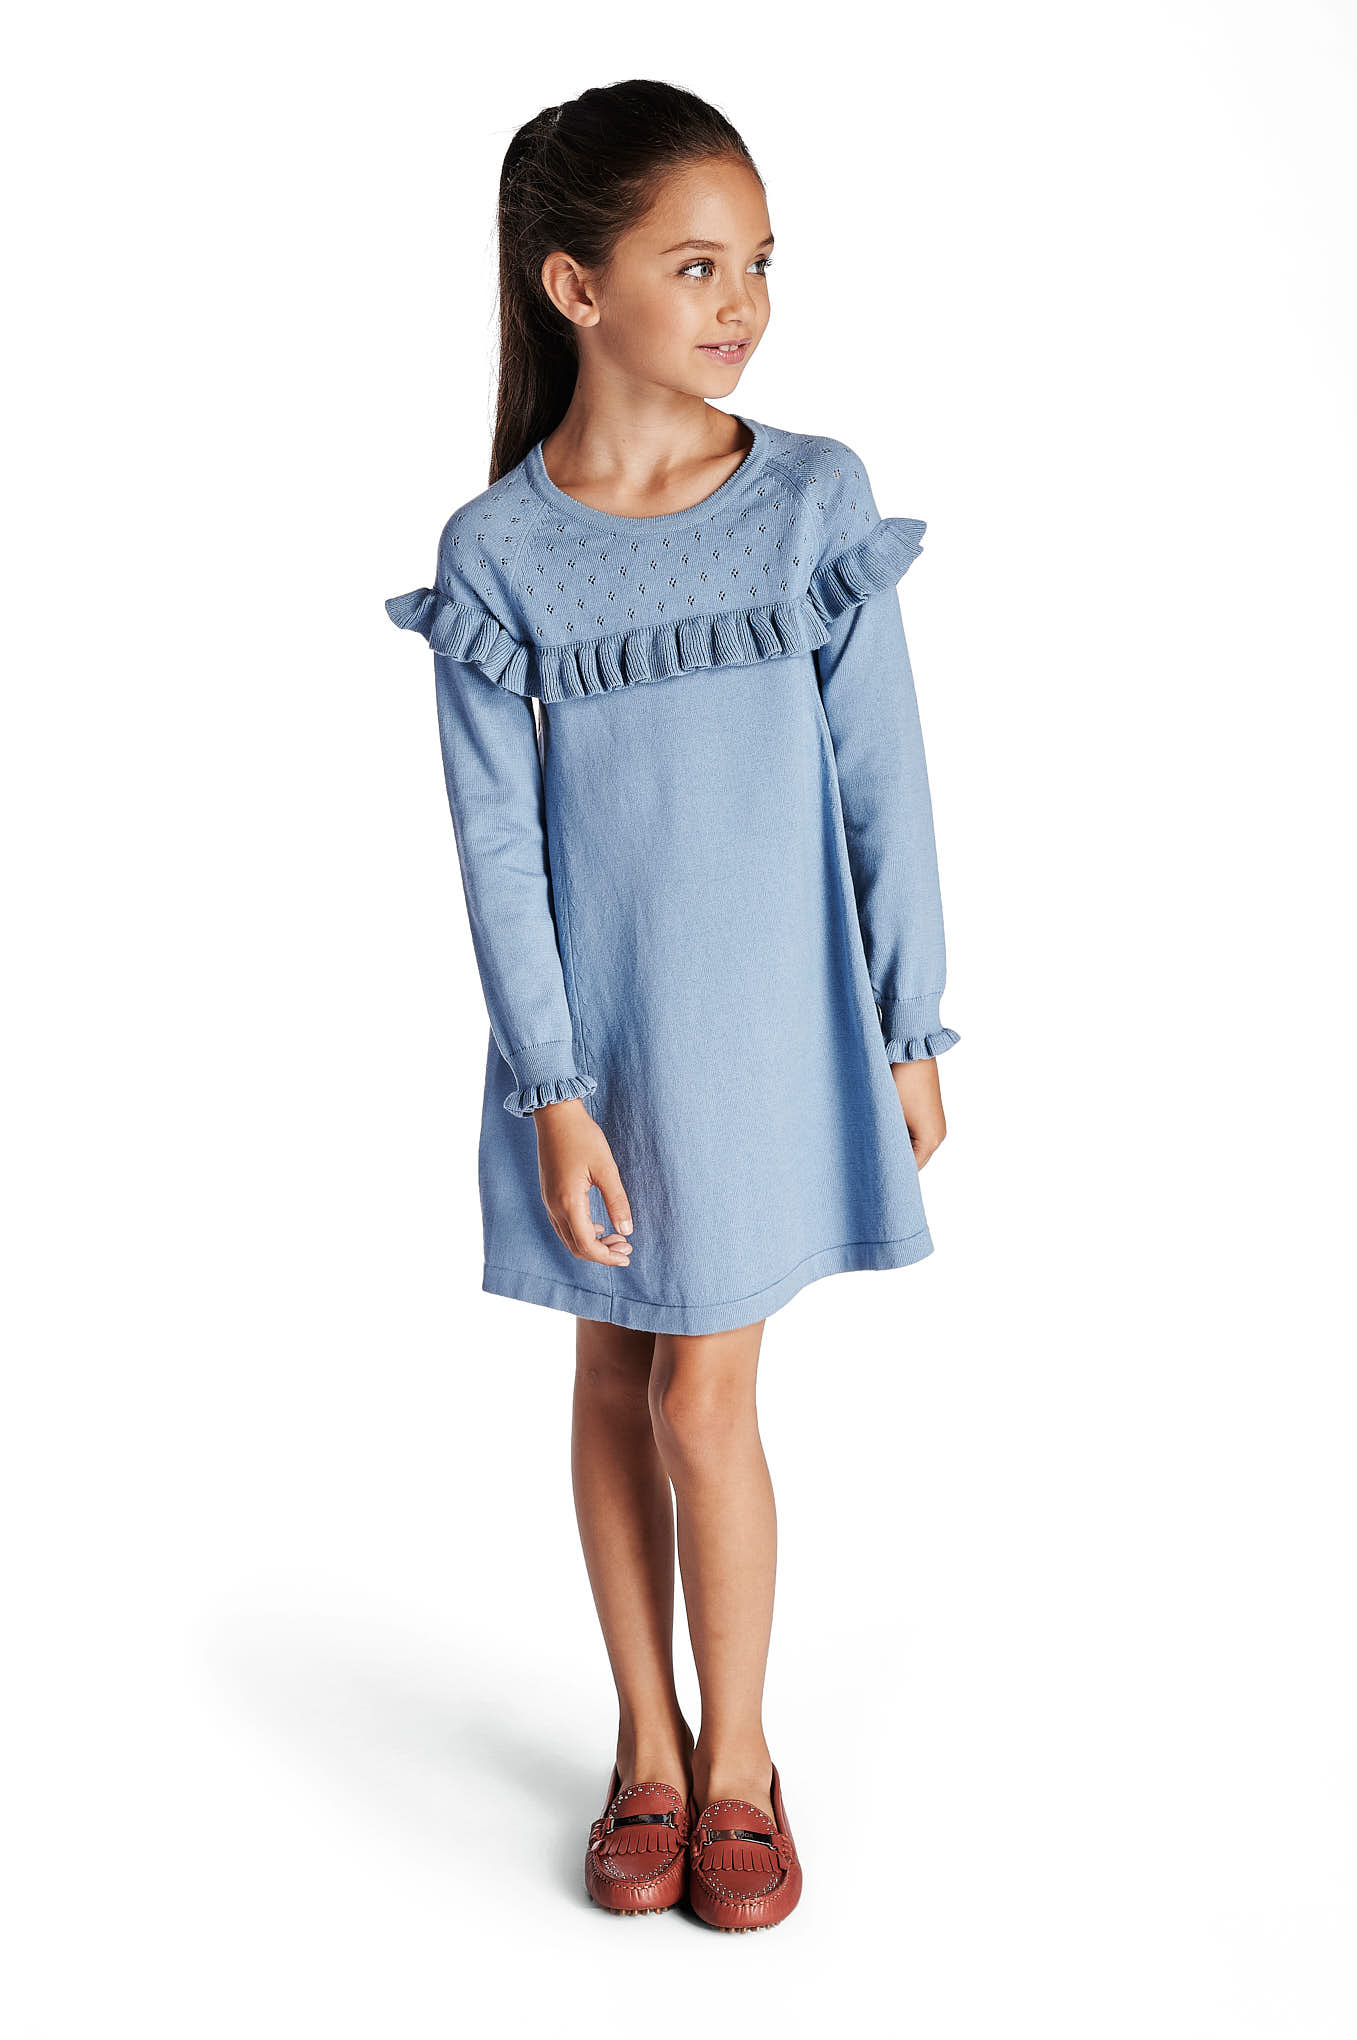 Knitwear Dress Light Blue Casual Girl